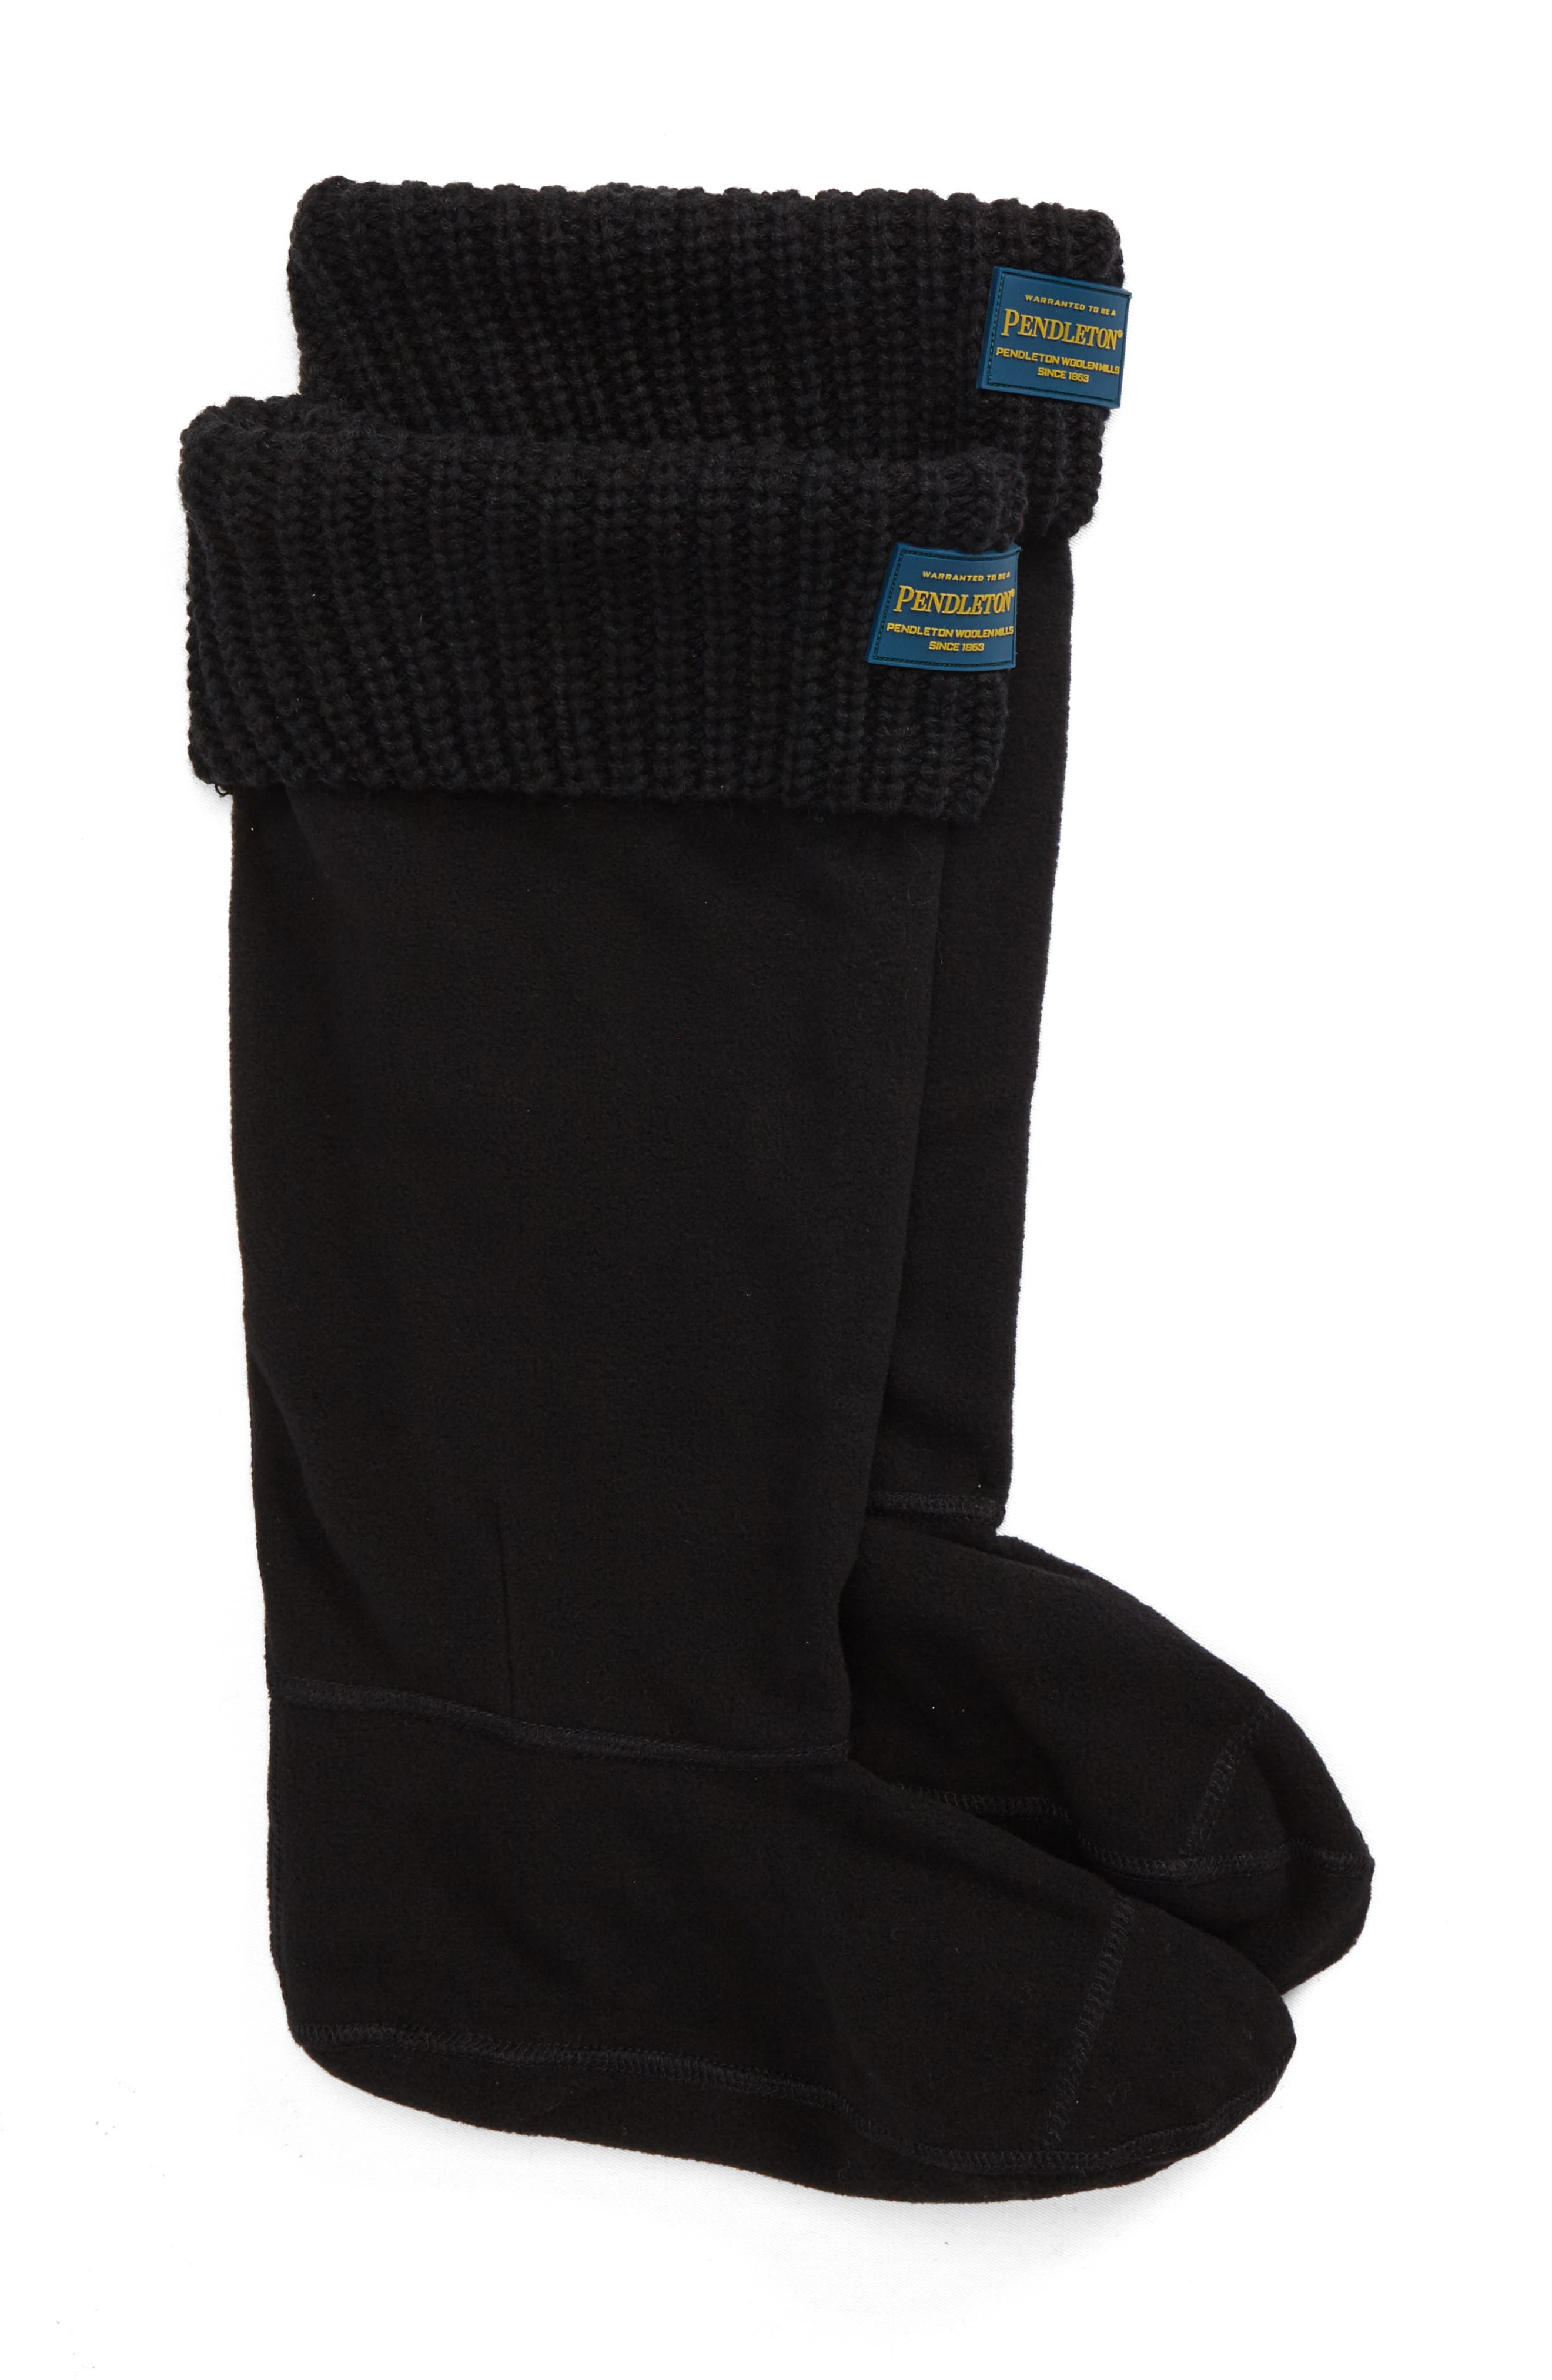 Pendleton Shaker Stitch Tall Boot Socks,                             Main thumbnail 1, color,                             BLACK